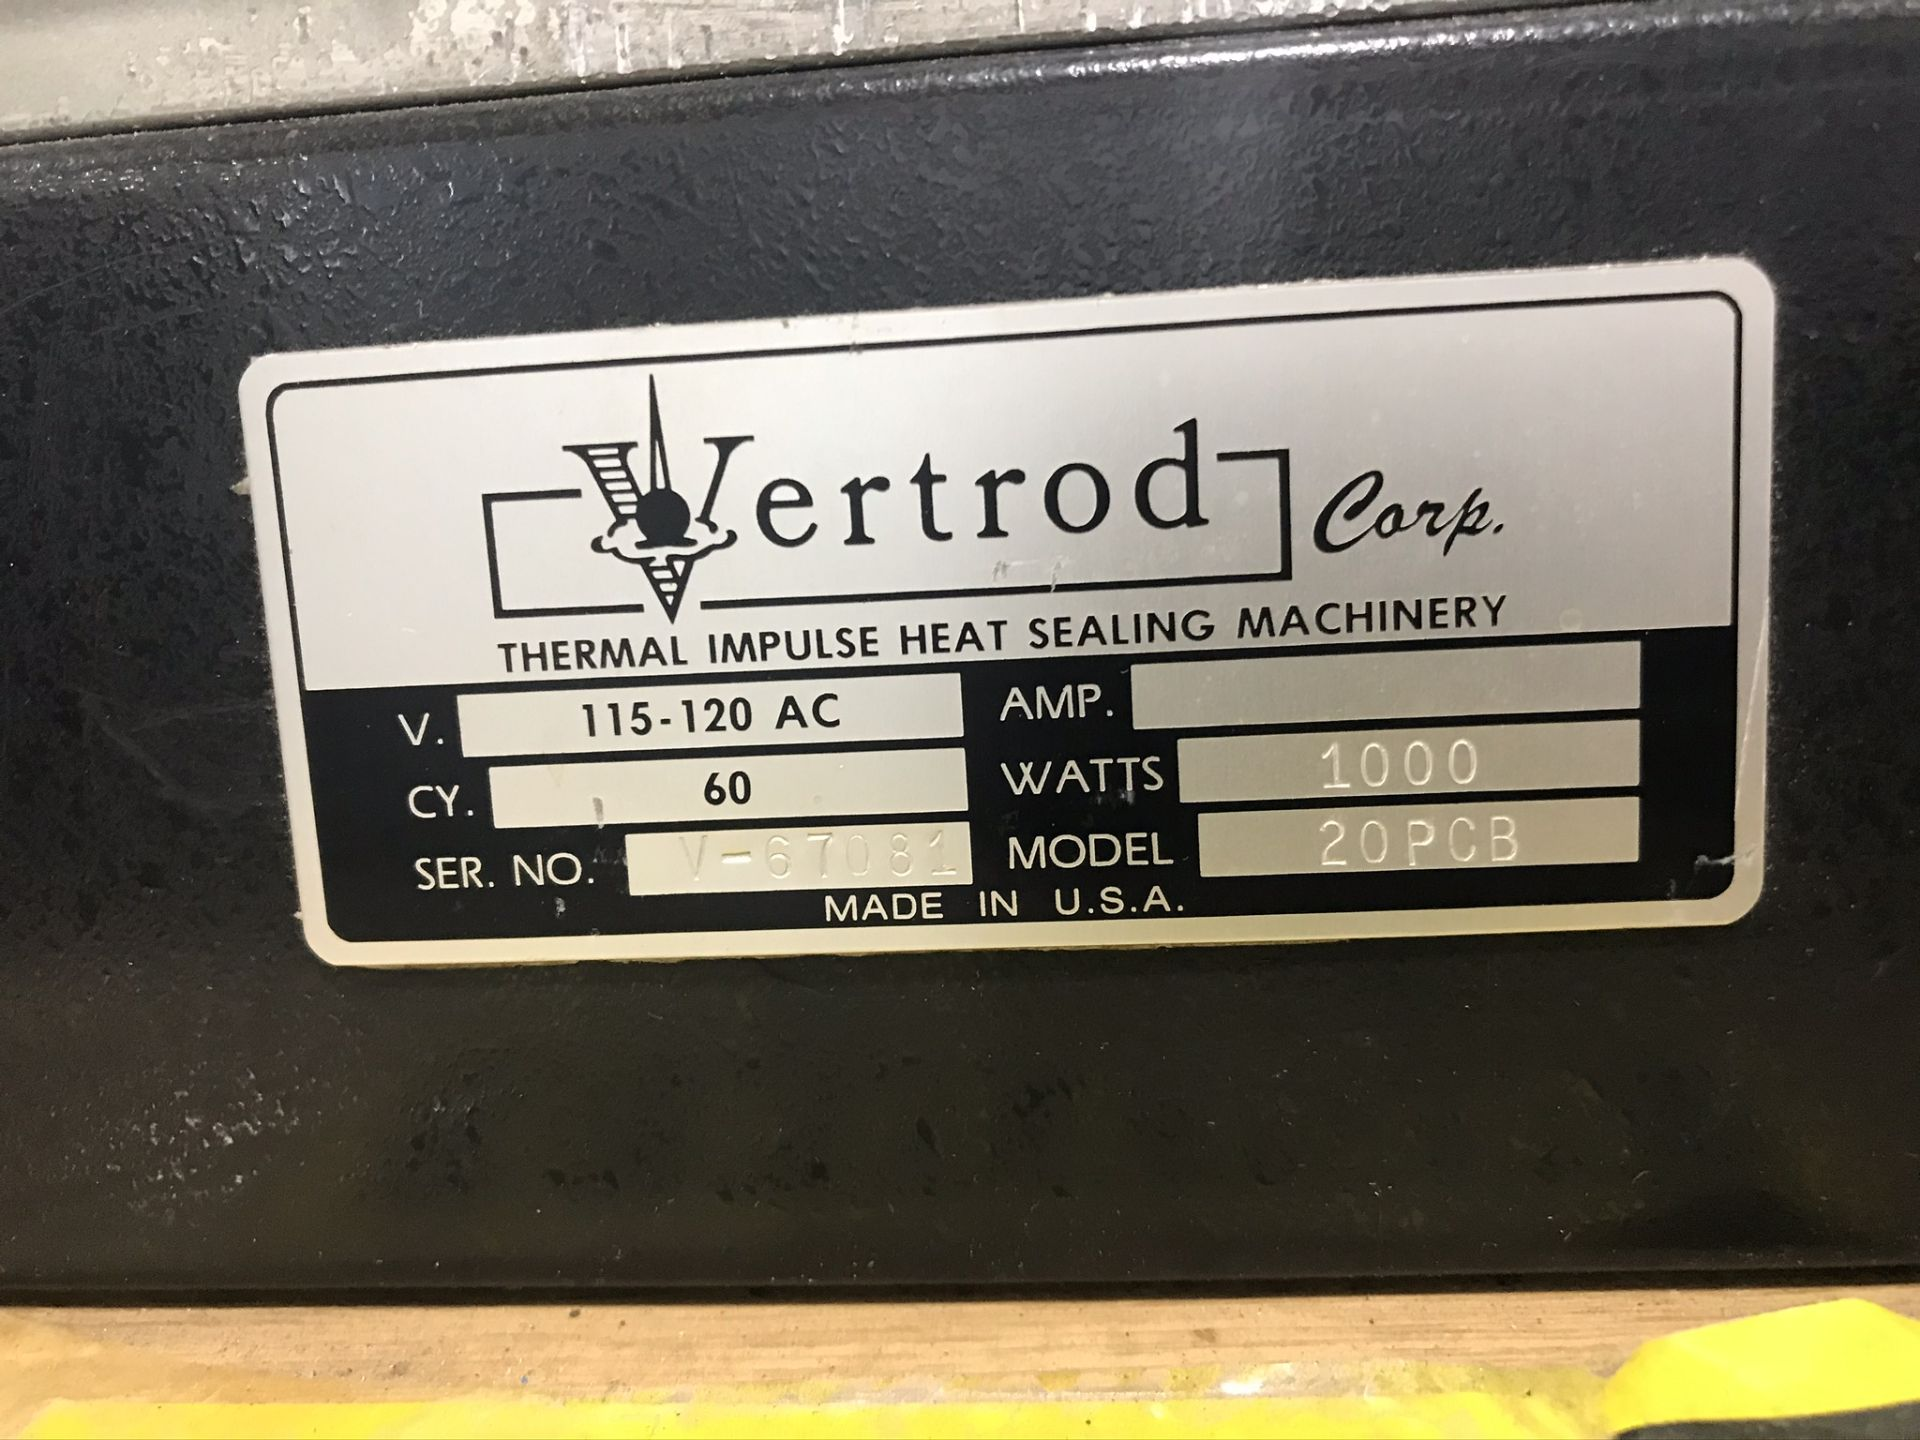 Vertrod 20PCB Pneumatic Thermal Impulse Sealer w/ Portable Elect Foot Pedal & Stand - Image 3 of 3